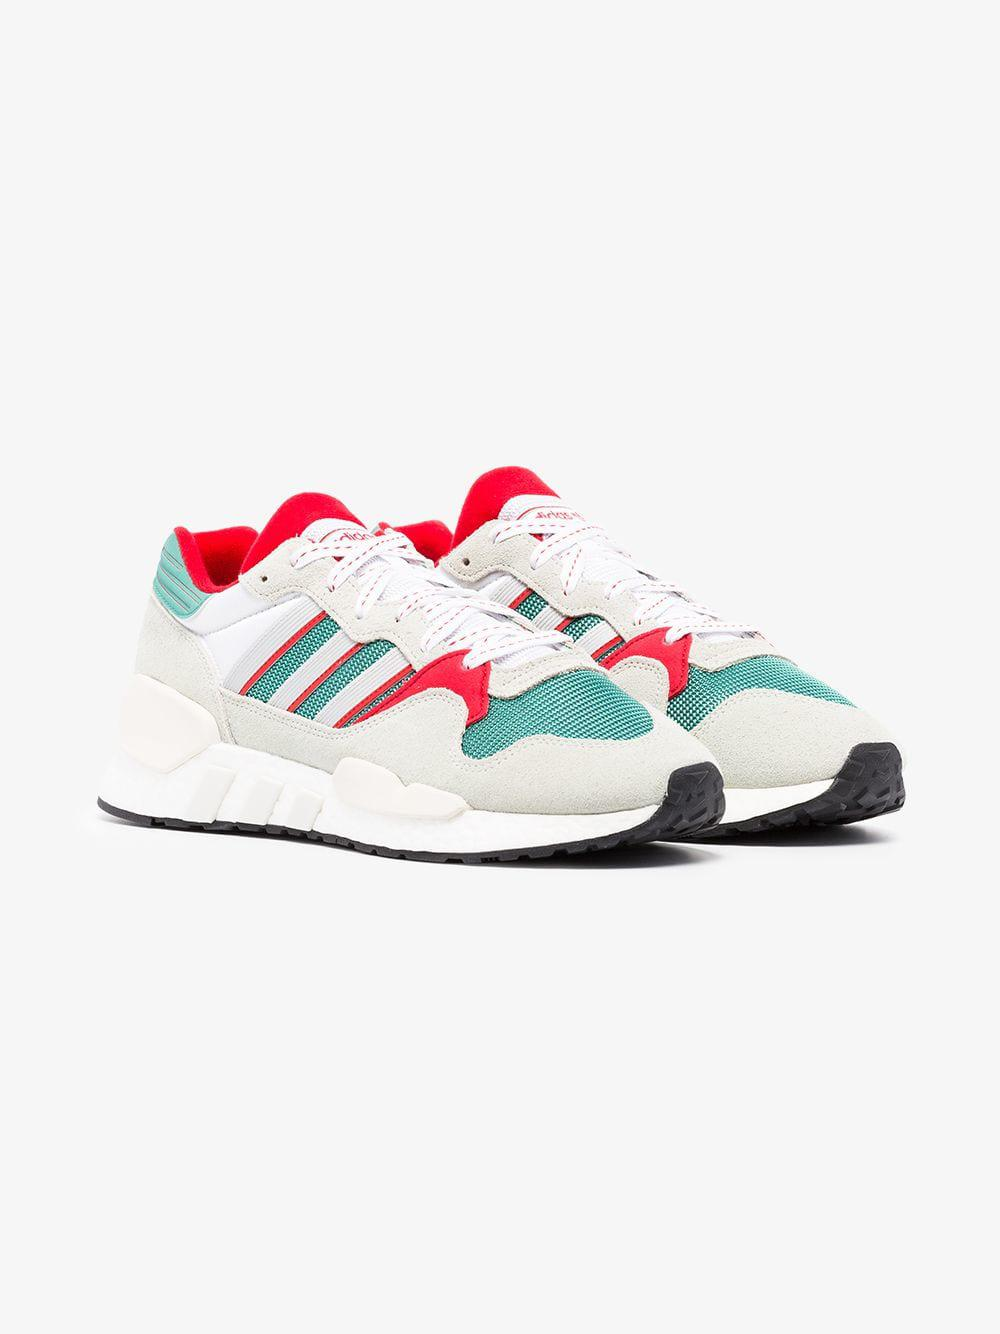 02925e3754986f ... Adidas - Green Never Made Multicoloured Zx930 X Eqt Suede Sneakers for  Men - Lyst. adidas Rising Star x R1 Never ...